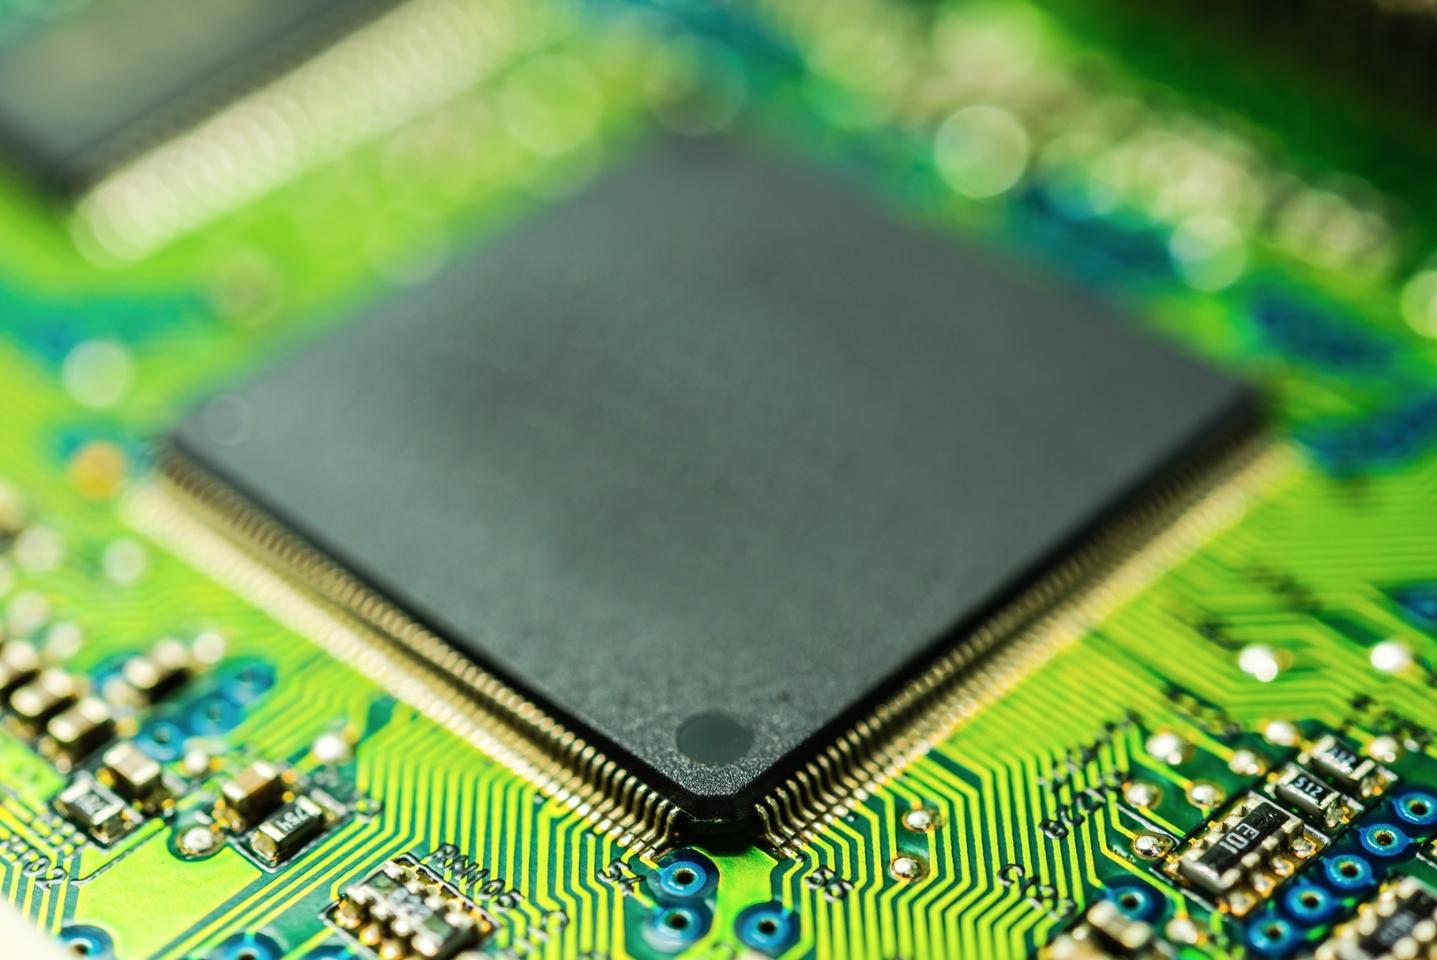 Researchers in Singapore and Germany have developed a chip that can not only process data, like the one above, but can also act asmemory storage